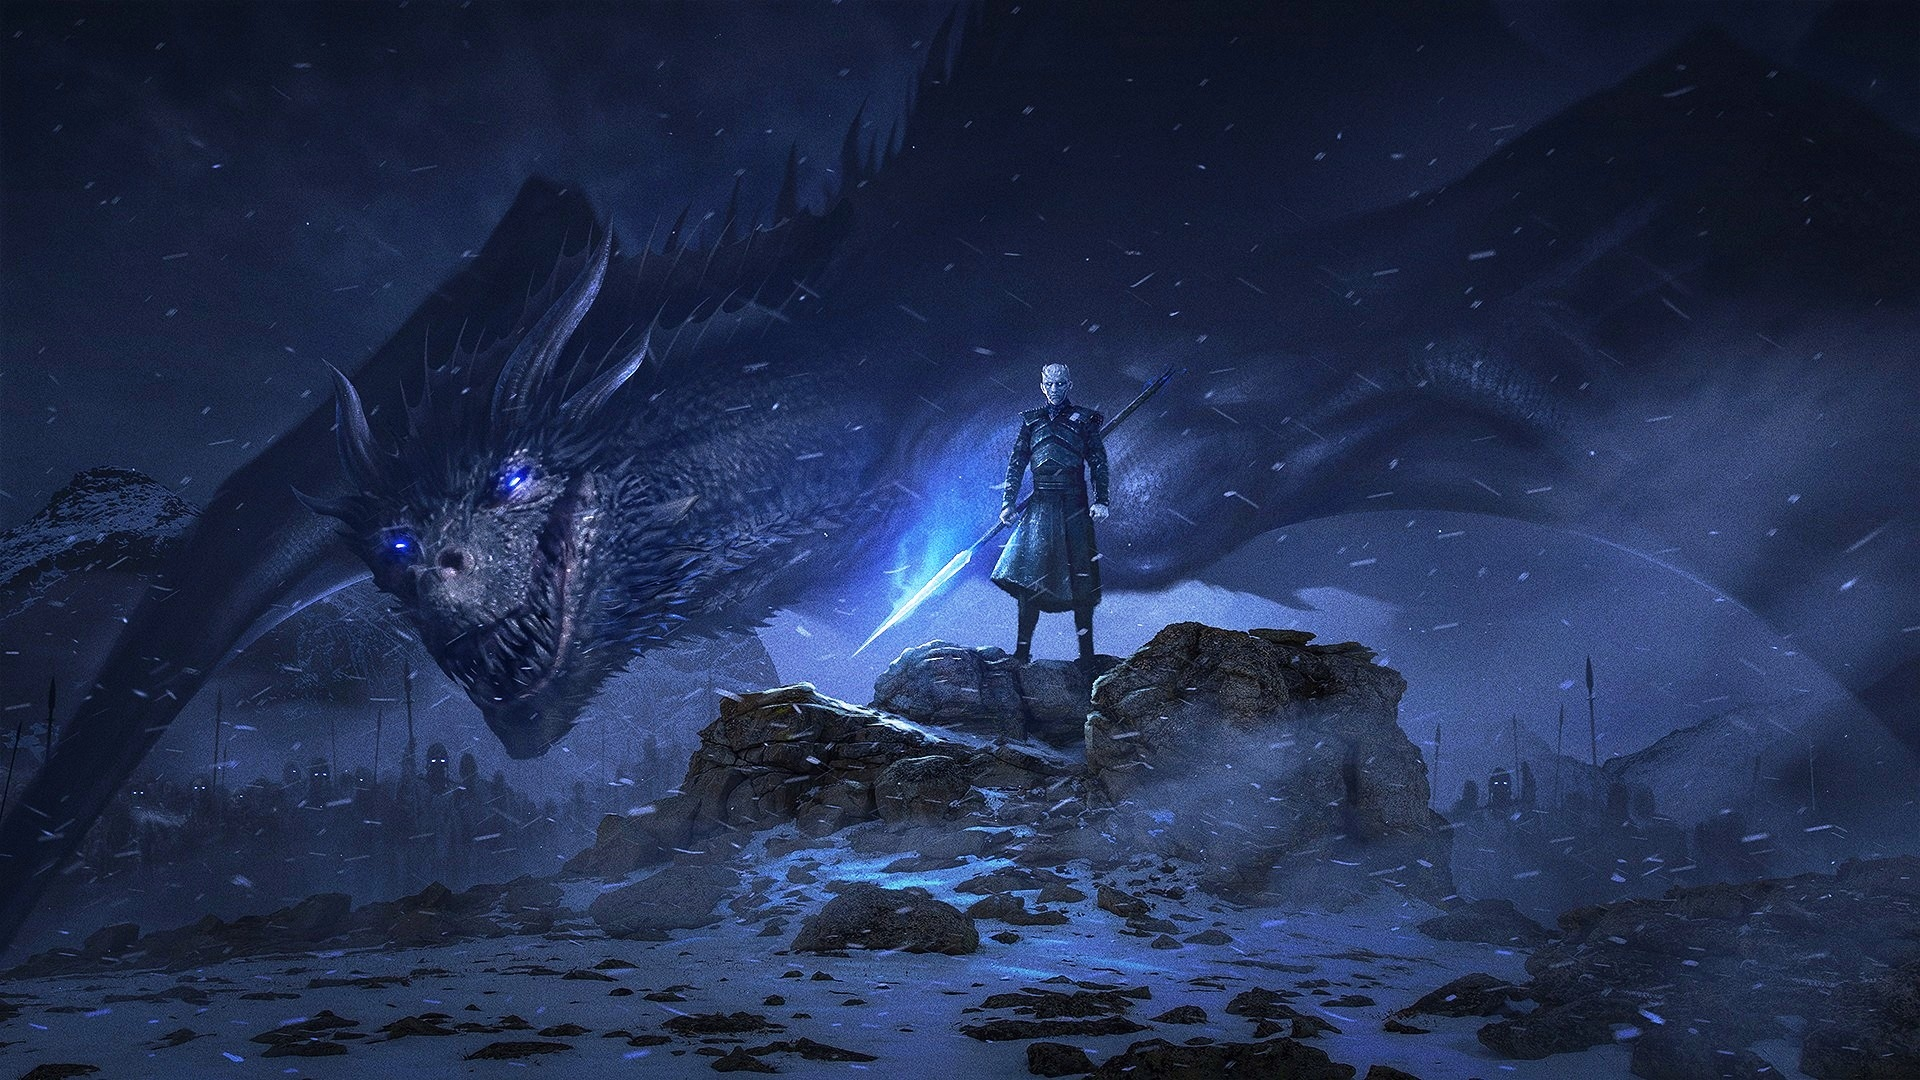 1360x768 Night King And Dragon Desktop Laptop Hd Wallpaper